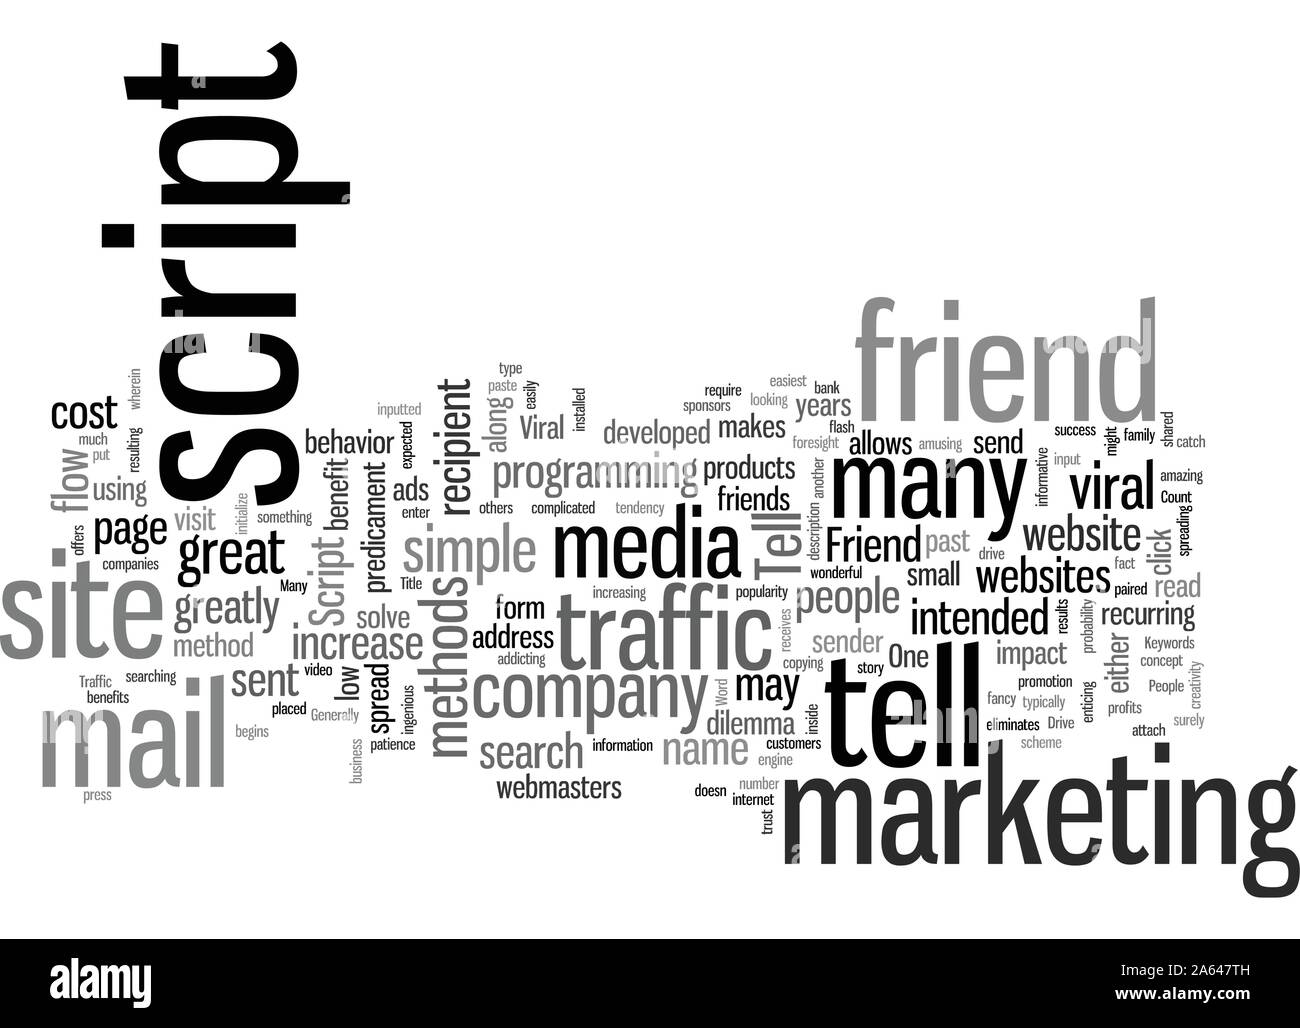 How To Use A Tell A Friend Script To Drive Traffic Today Stock Vector